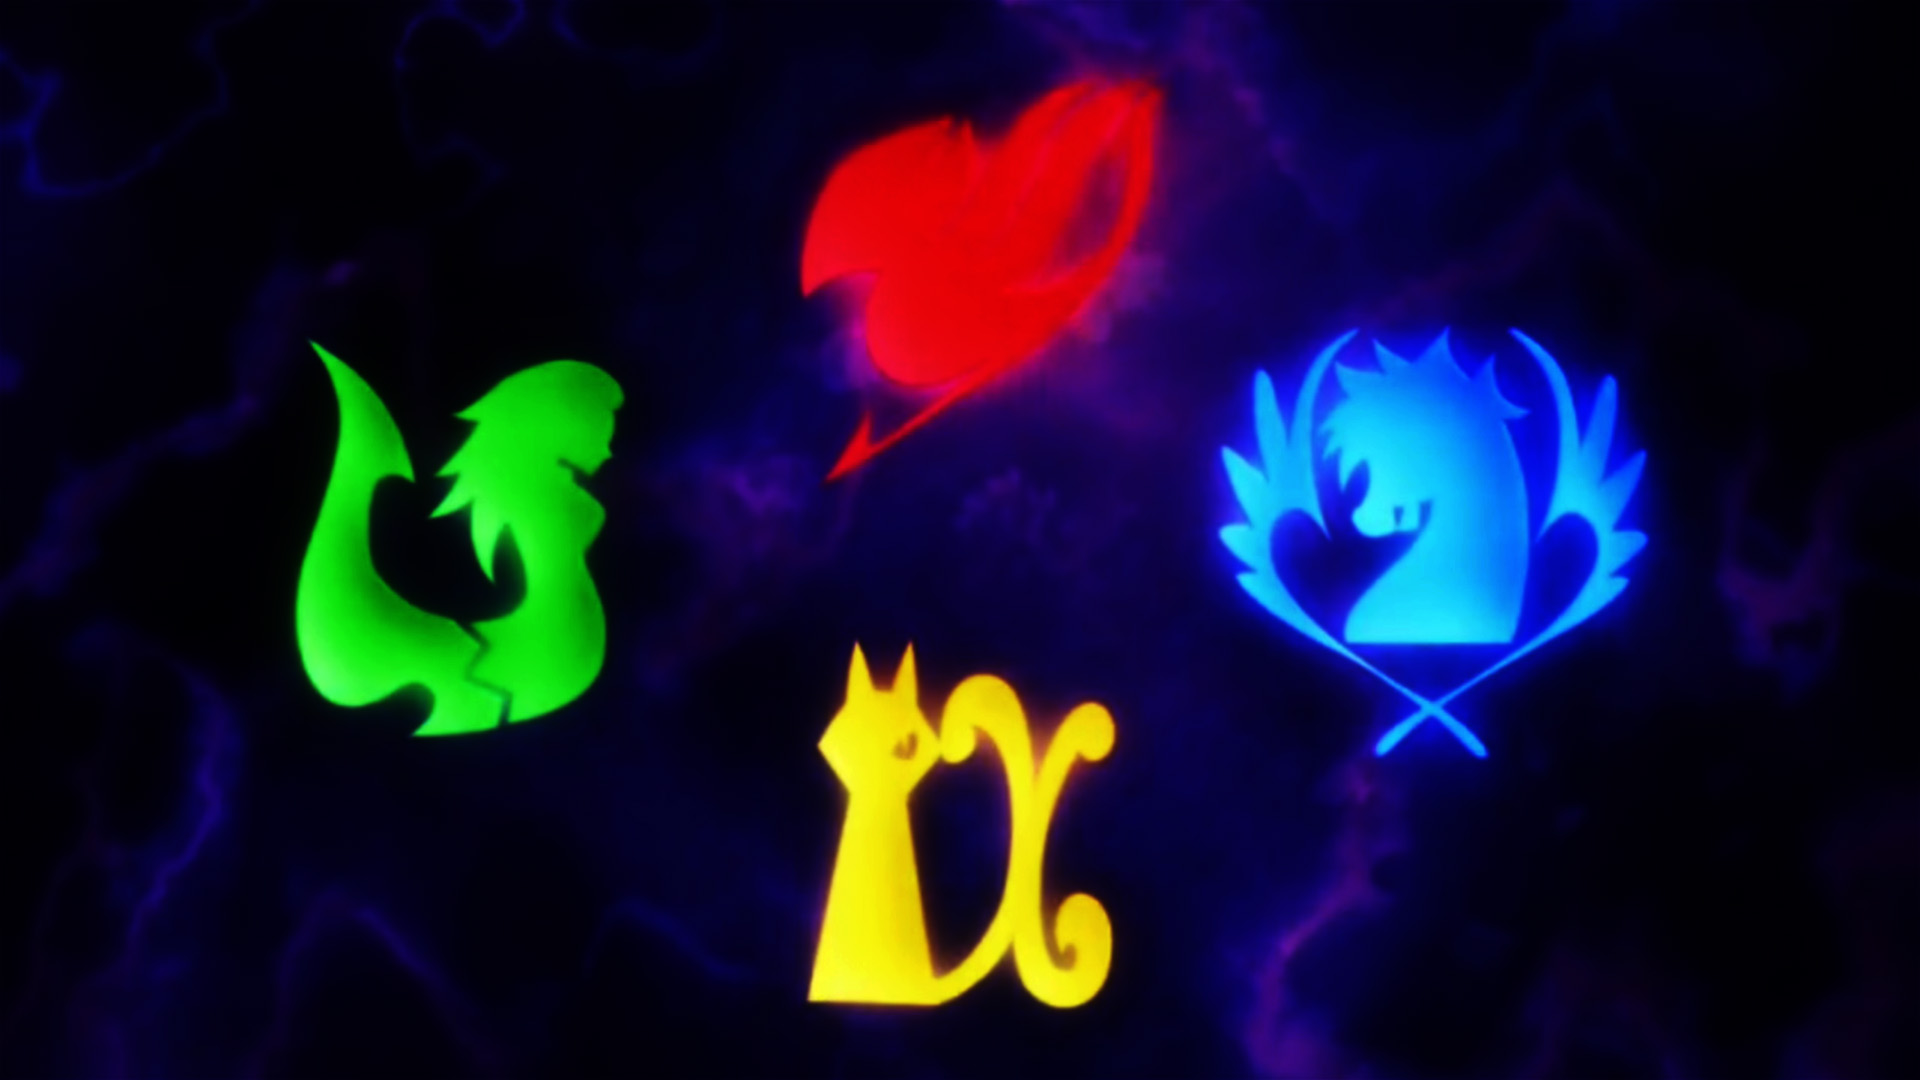 Fairy Tail Alliance Logo HD Wallpaper | Anime Wallpapers